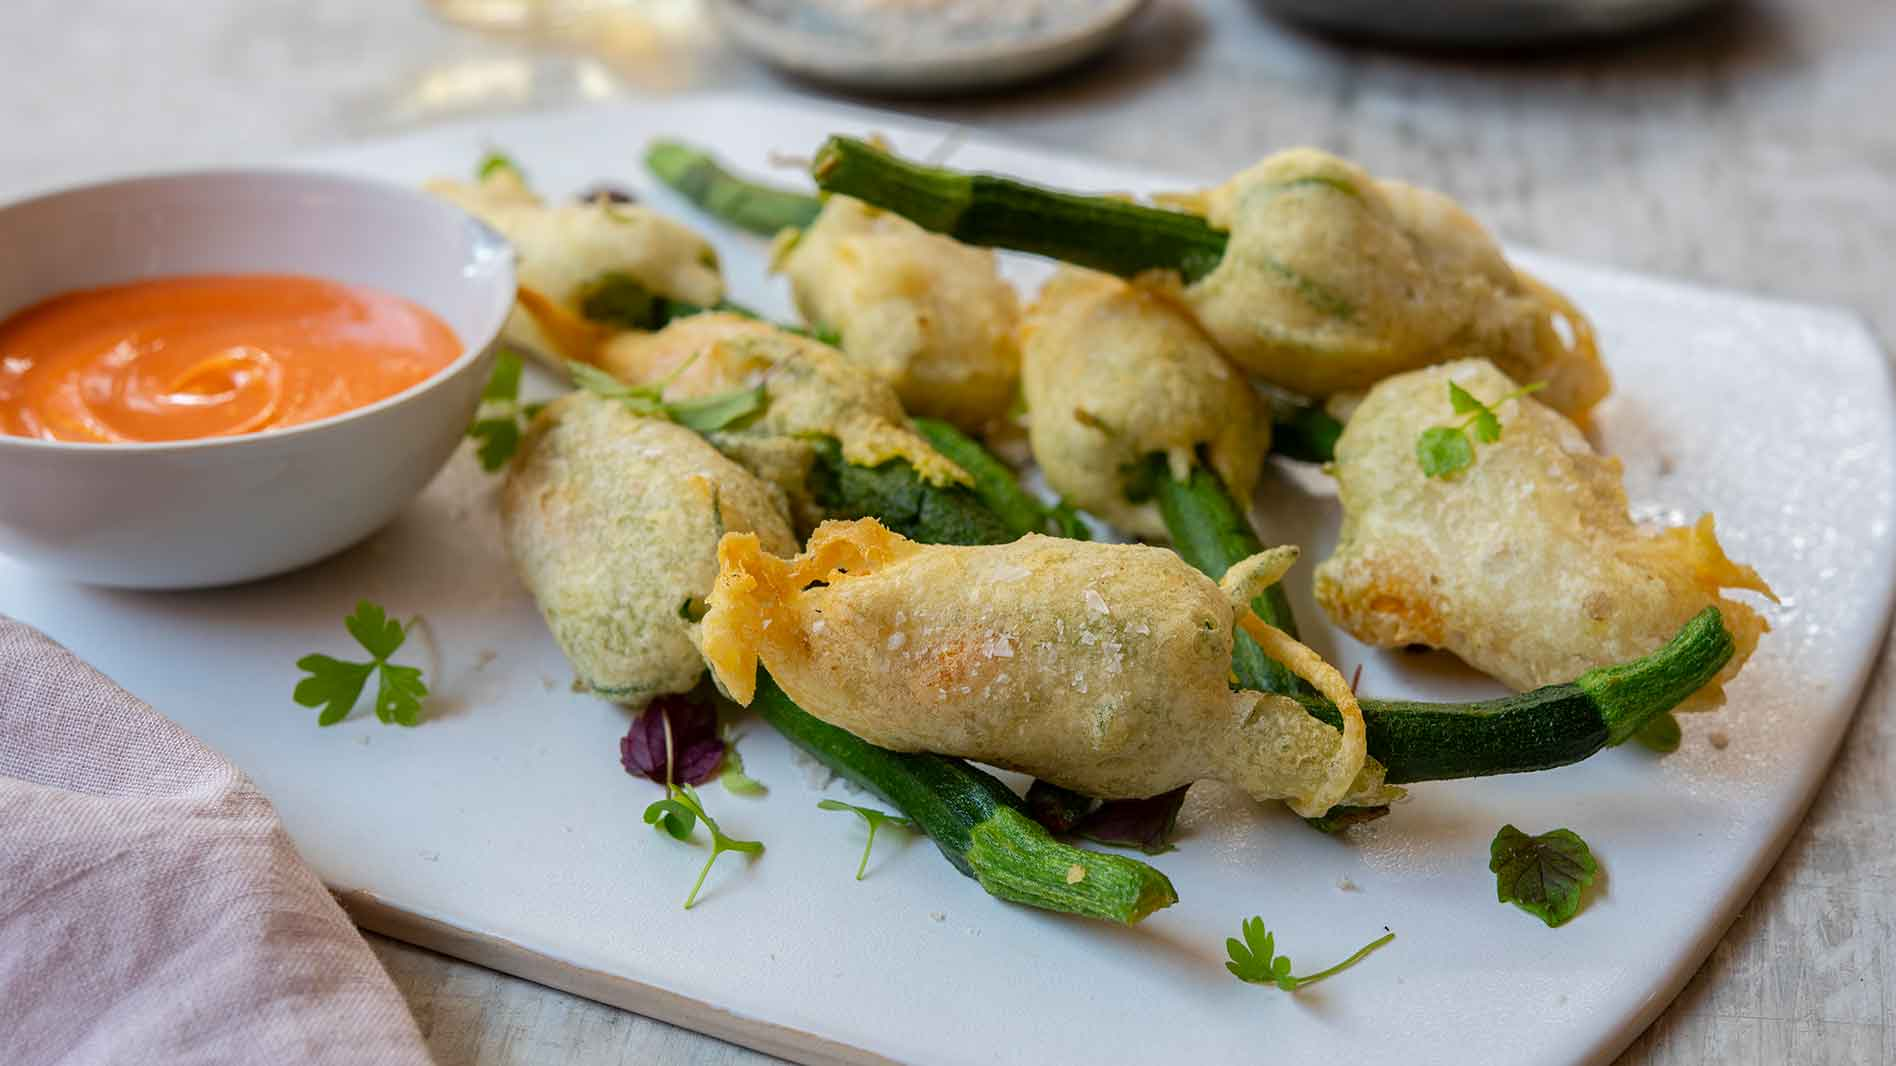 Vegan Tempura Zucchini Flowers Stuffed With Cashew Cheese